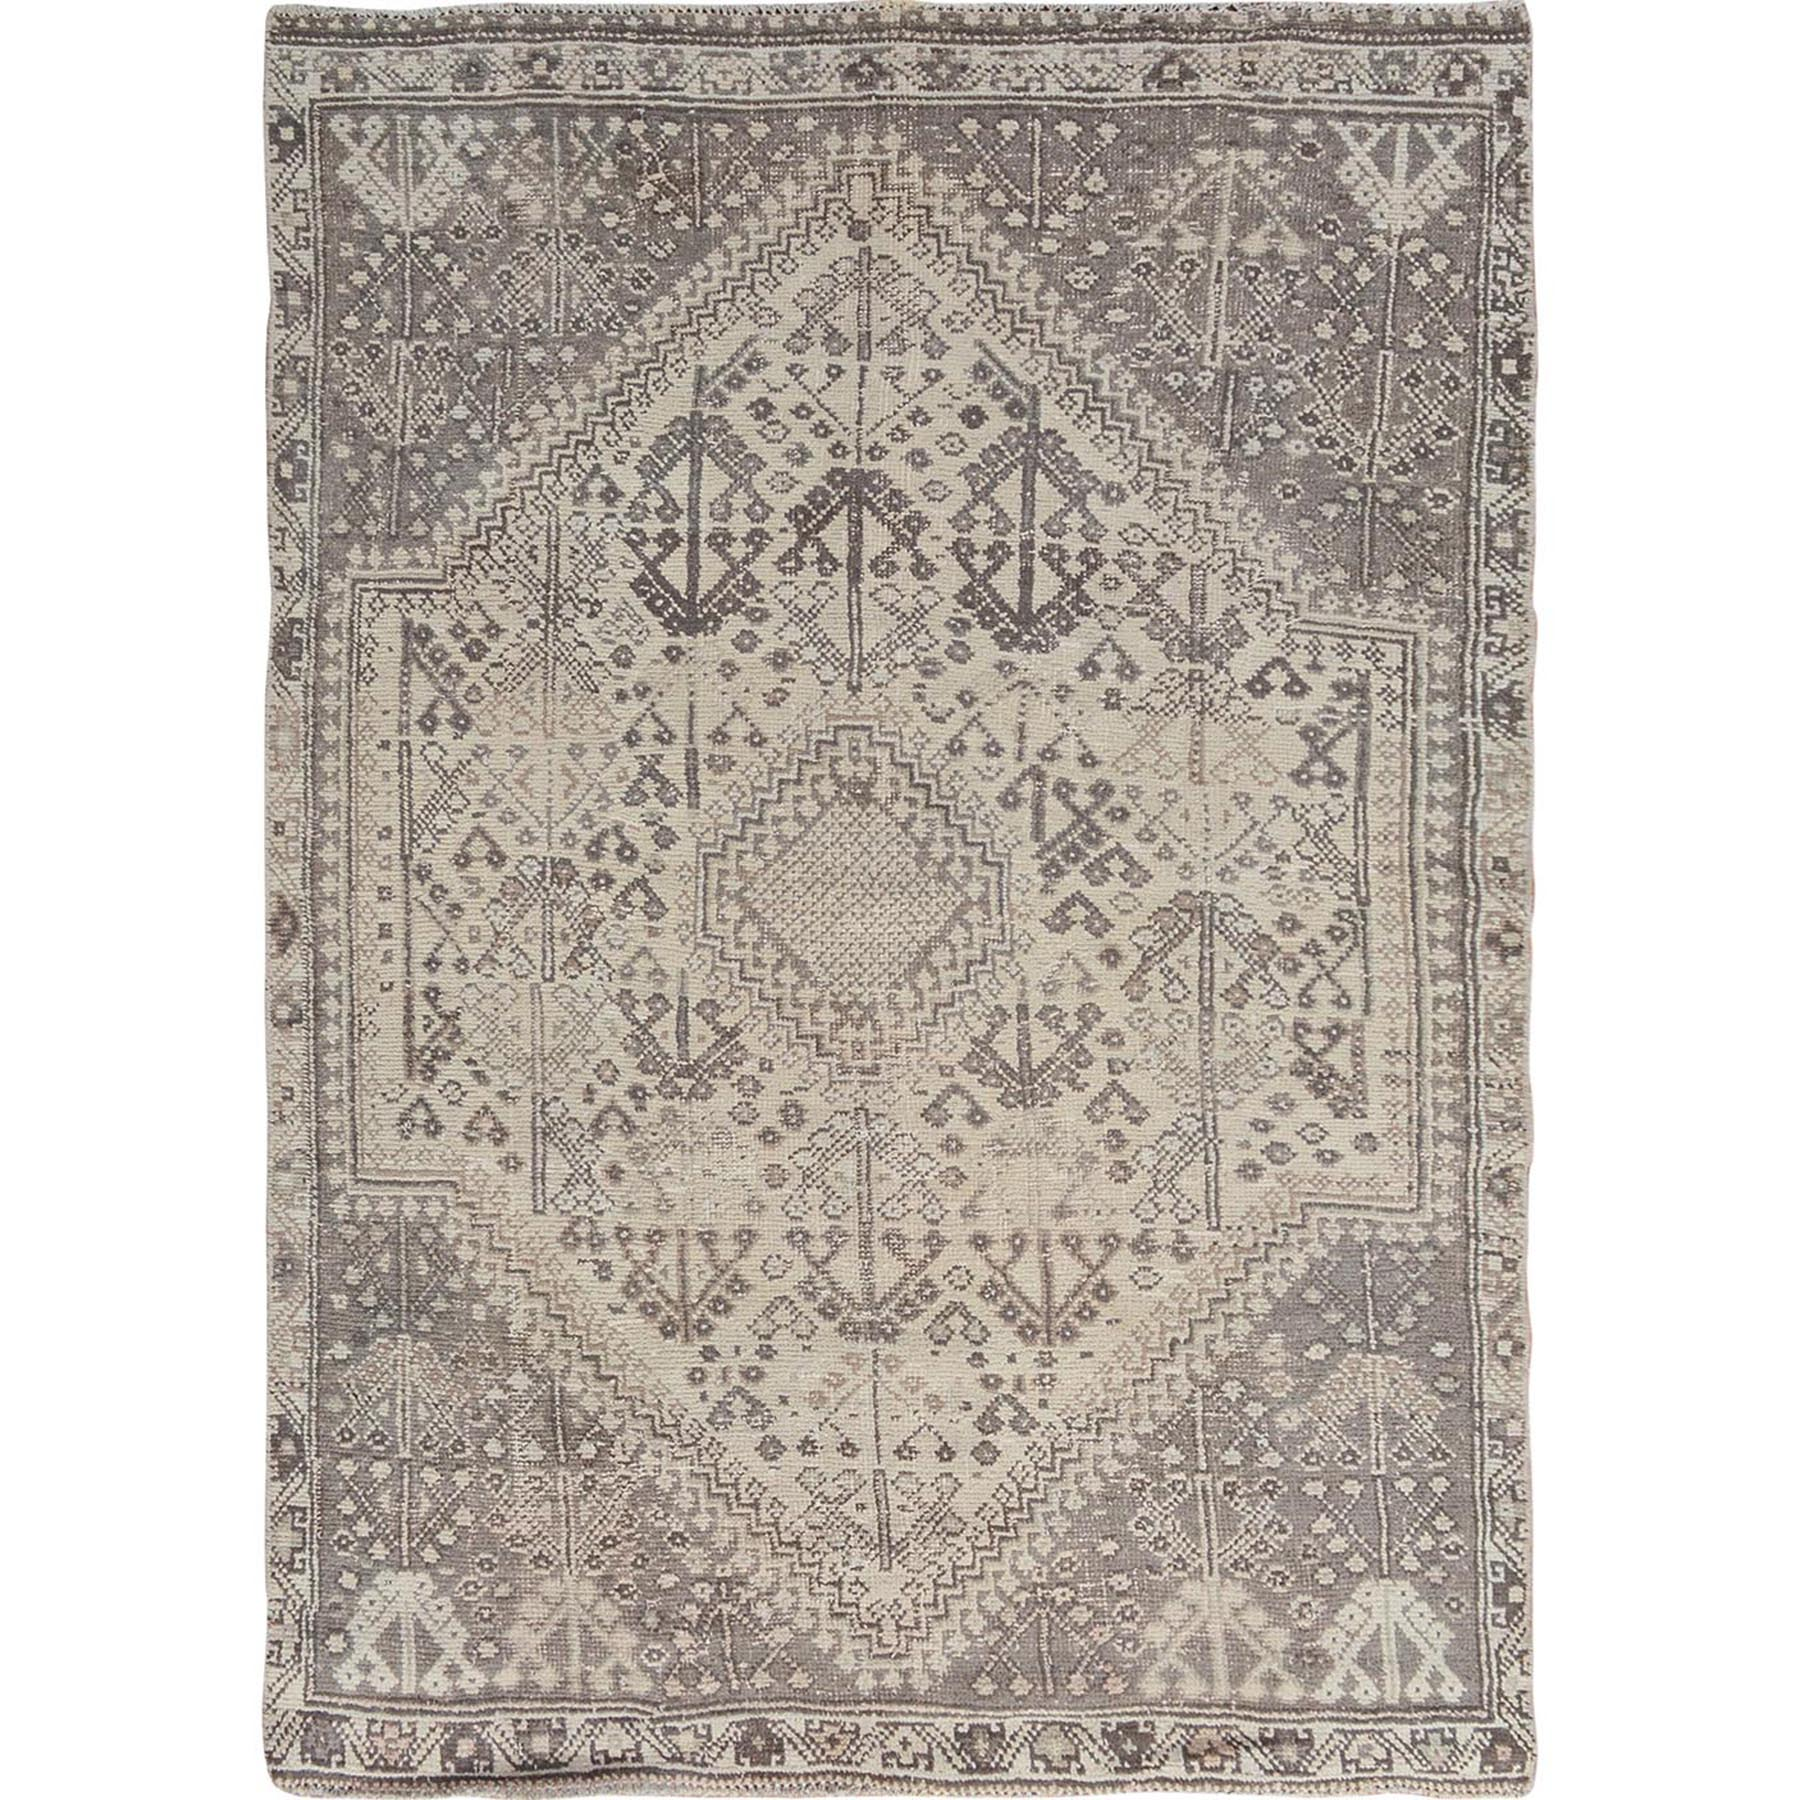 5-1 x7-4  Natural Colors Vintage And Worn Down Persian Qashqai Pure Wool Hand Knotted Oriental Rug